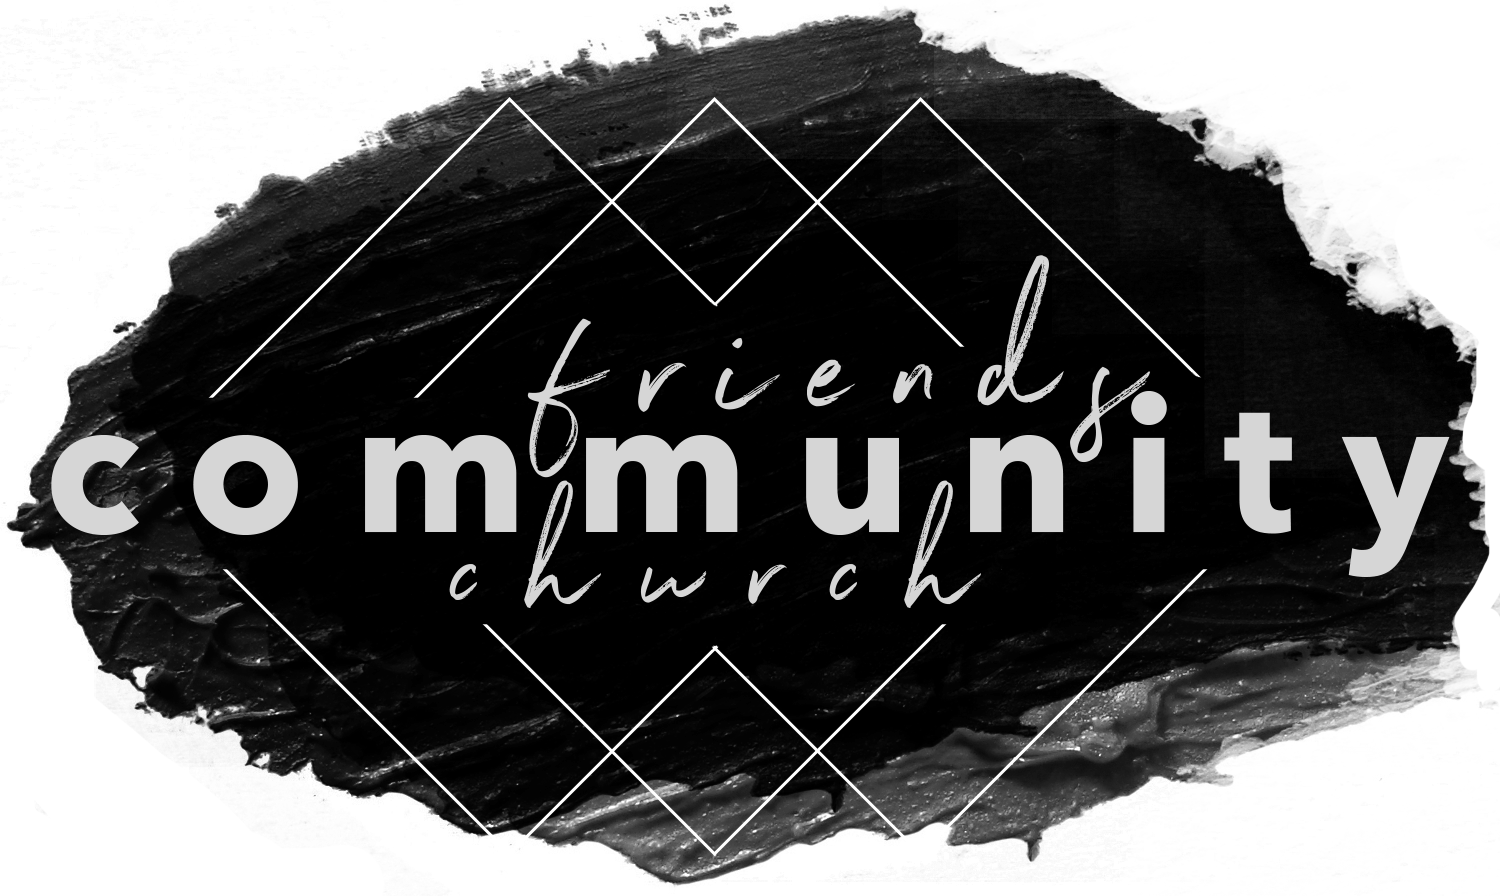 Friends Community Church